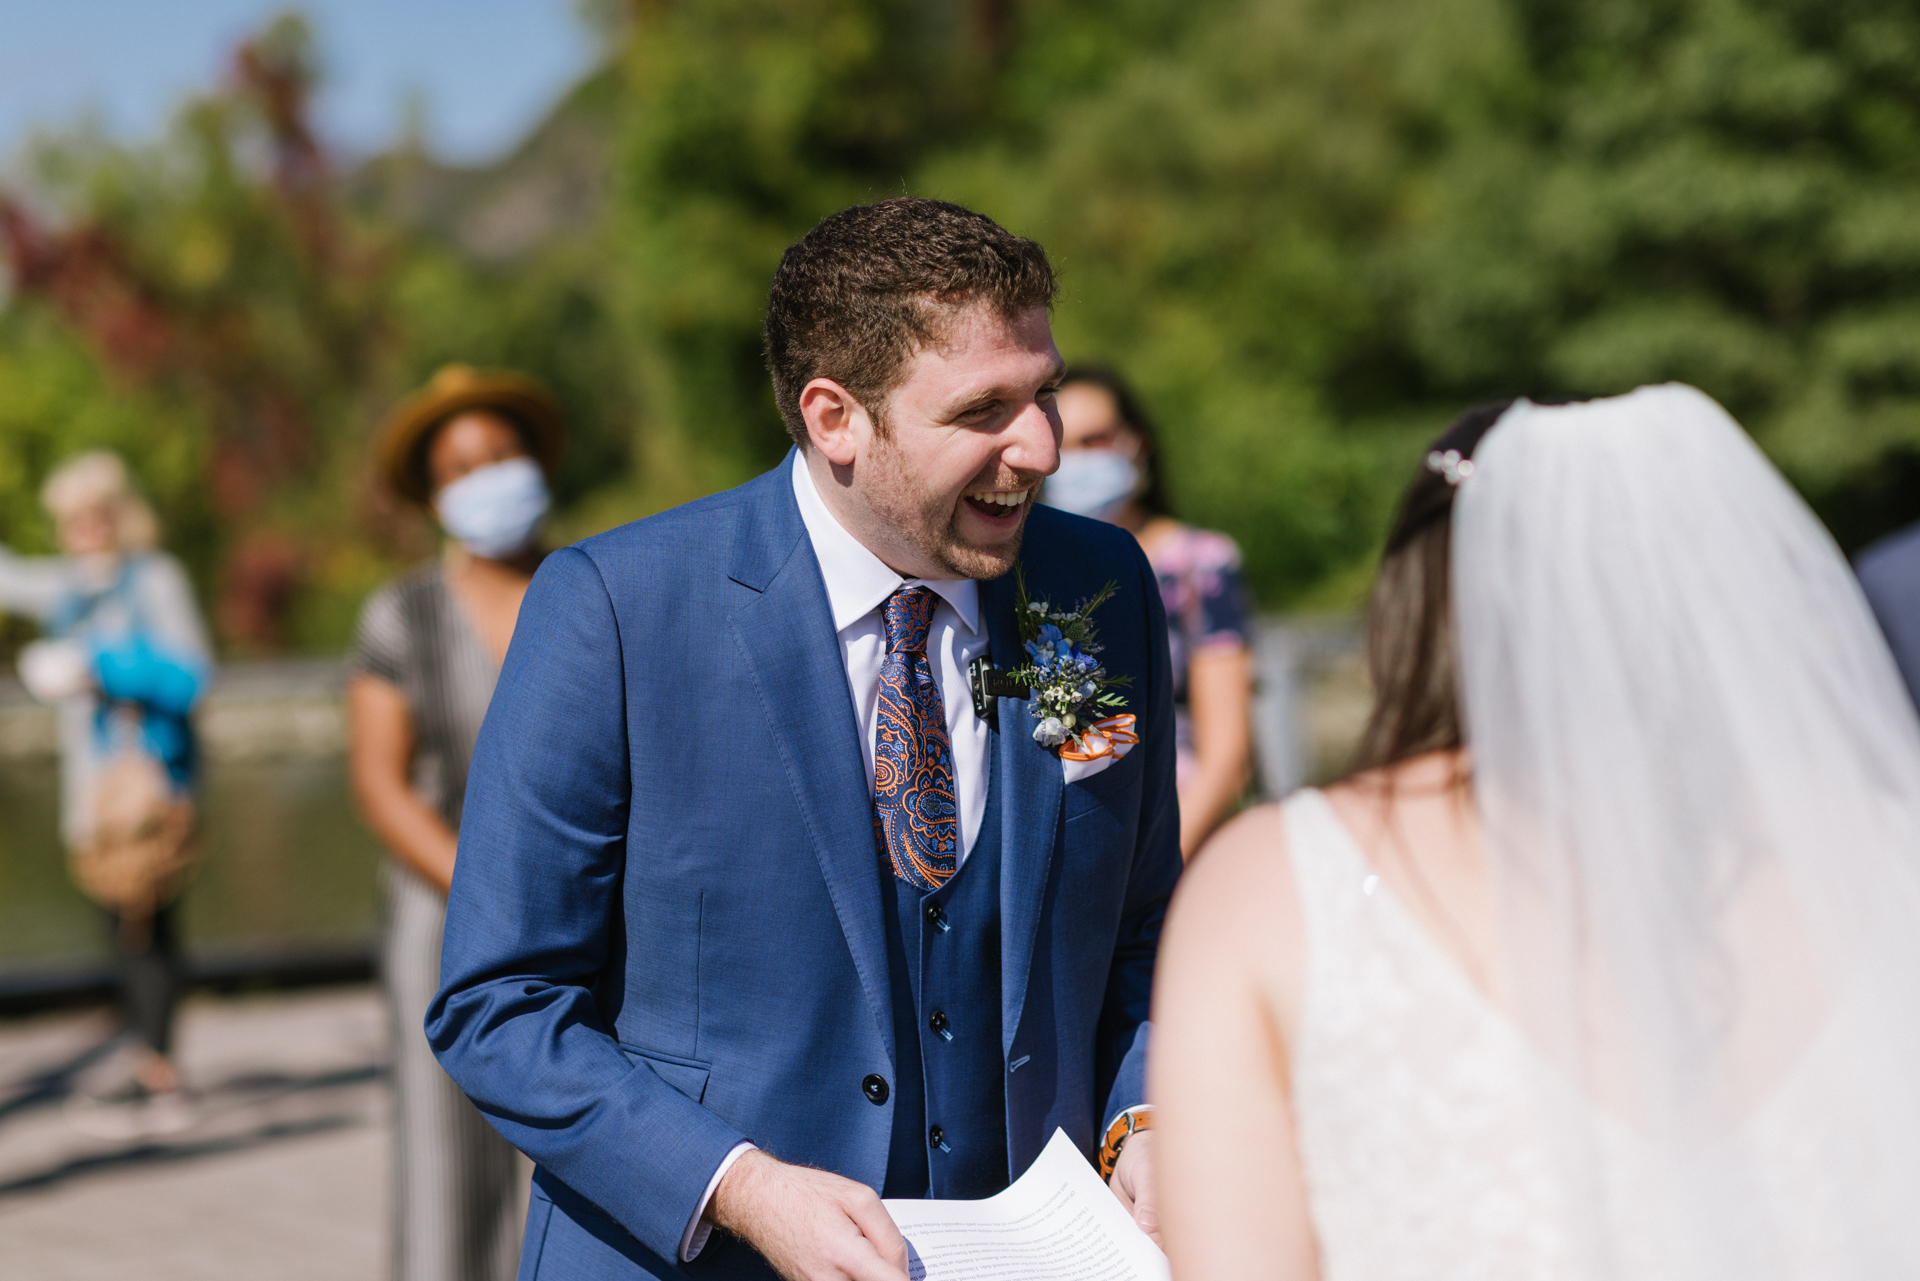 Dockside Park NY Outdoor Wedding Ceremony Picture | The groom laughs joyfully during his wedding ceremony